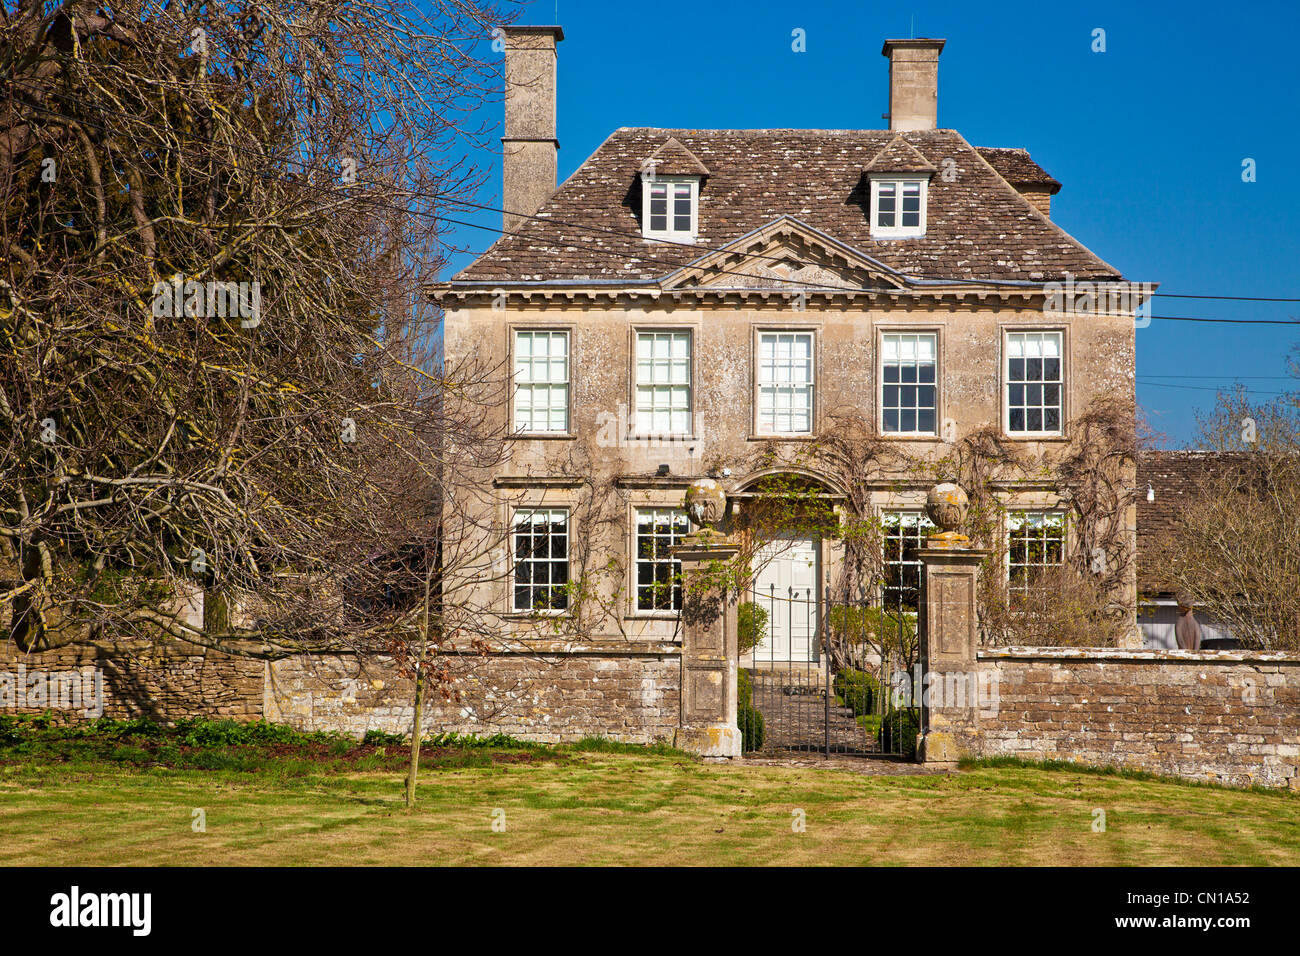 An imposing early 18th century English country manor house in Wiltshire, England, UK - Stock Image